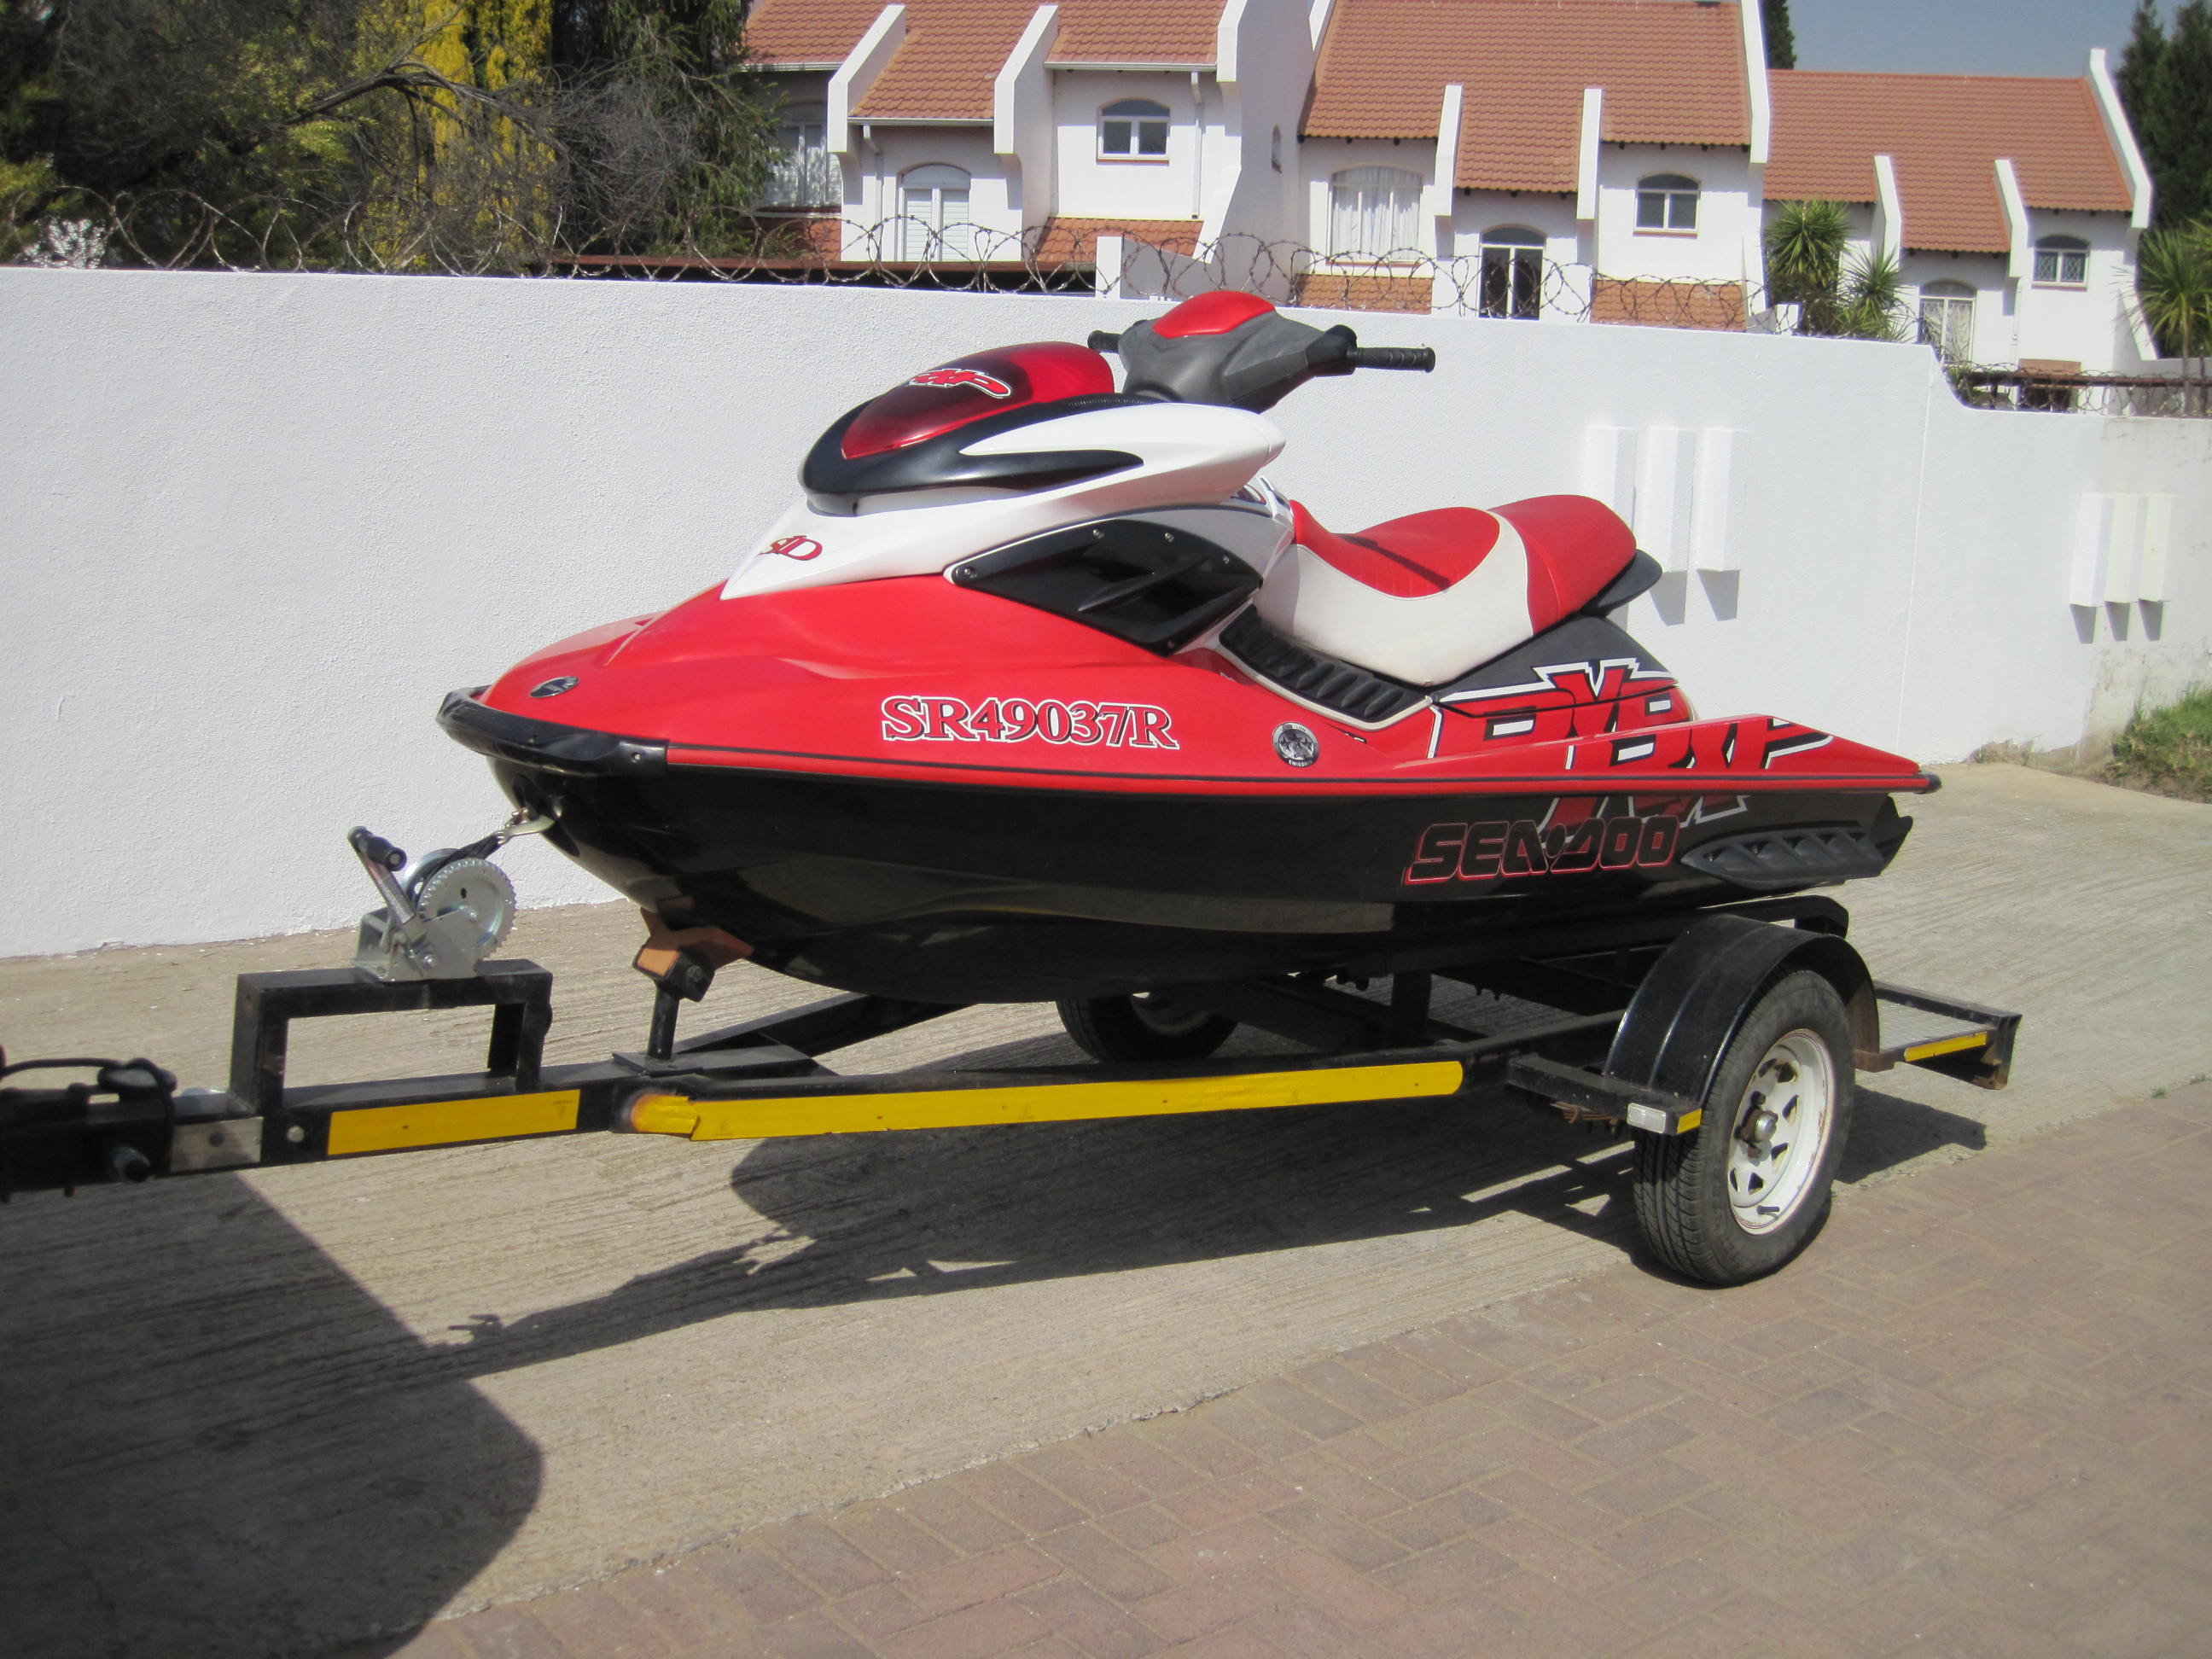 2008 Seadoo Rxp 215 Supercharged Rotax 4 Tec Just Boats